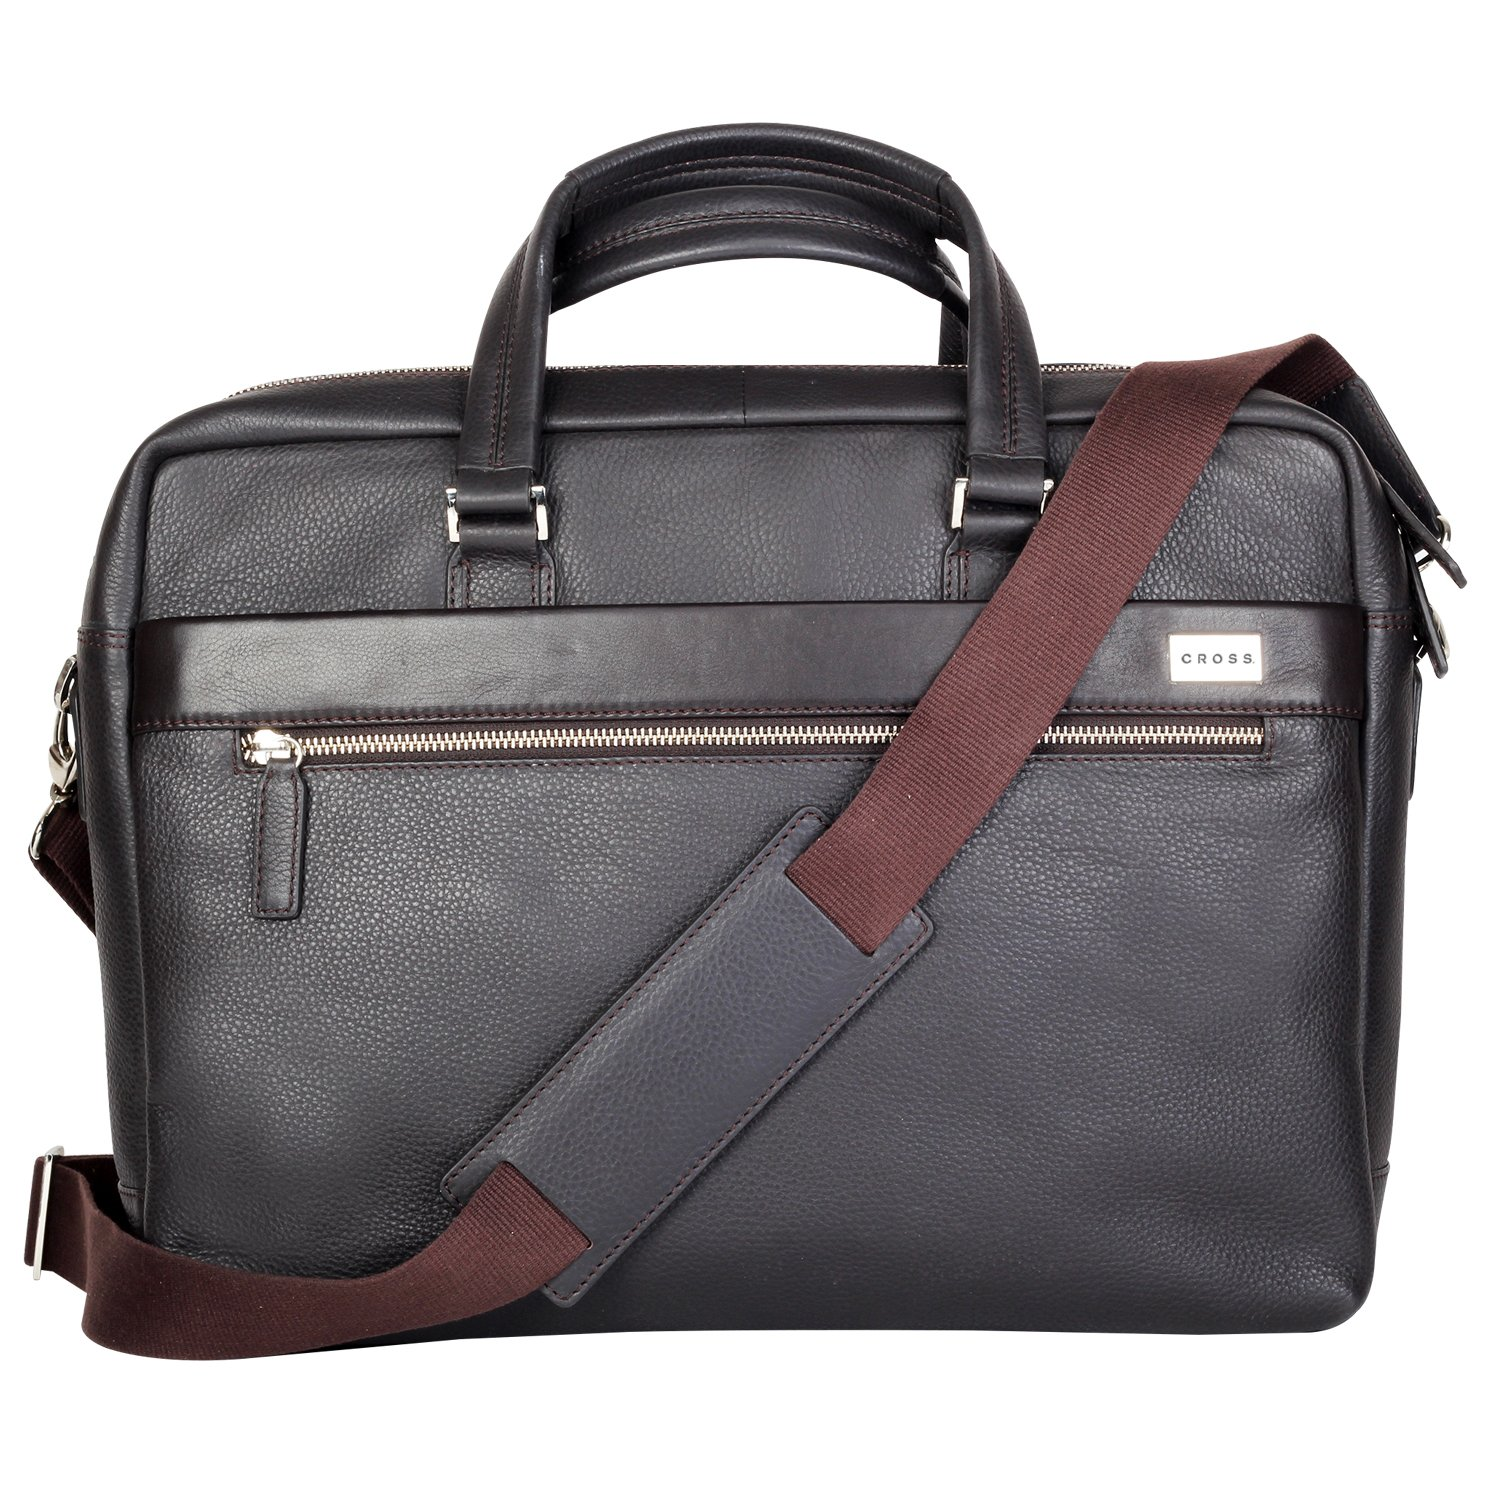 CROSS Men's Leather Weekender / Office / Laptop / Business Bag with 14 inches Laptop Compartment - FV - Coffee - AC021028-2